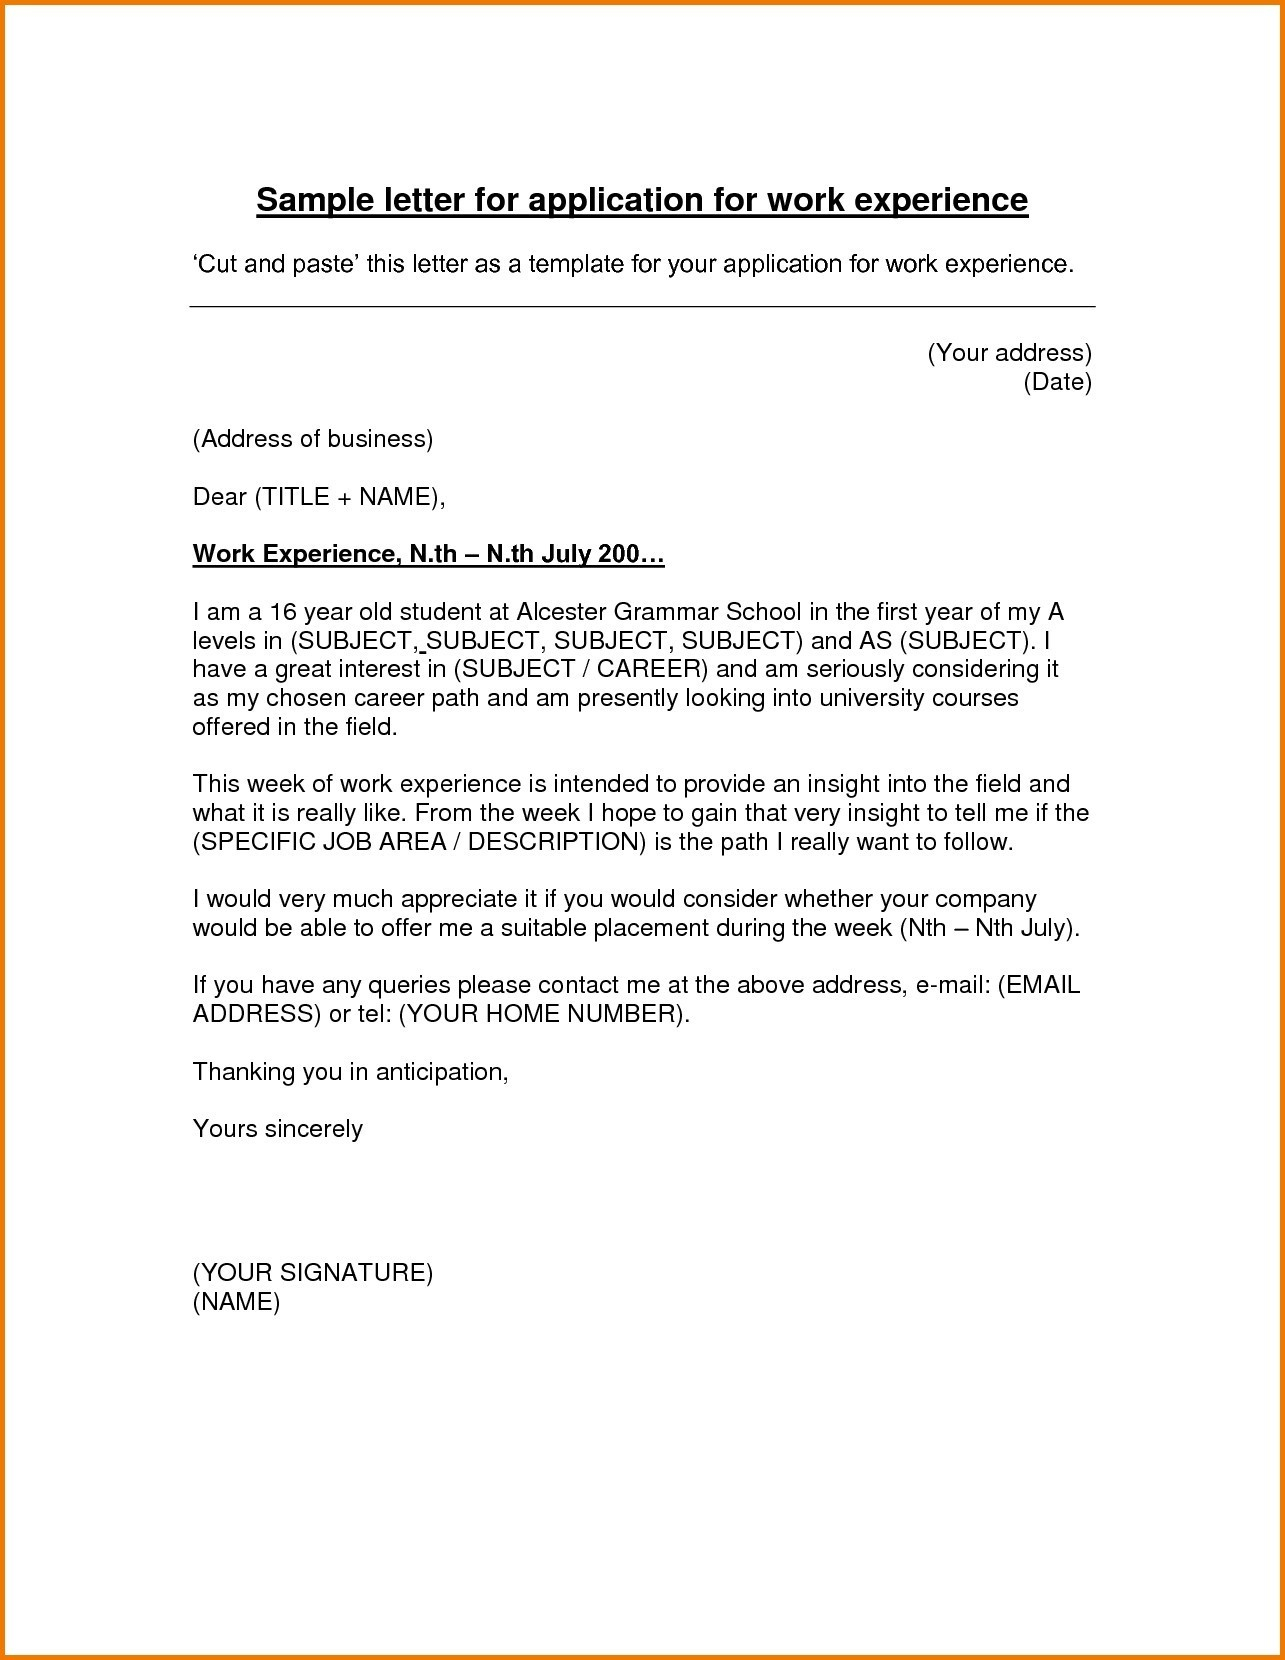 Hvac Cover Letter Template Collection | Letter Template ...